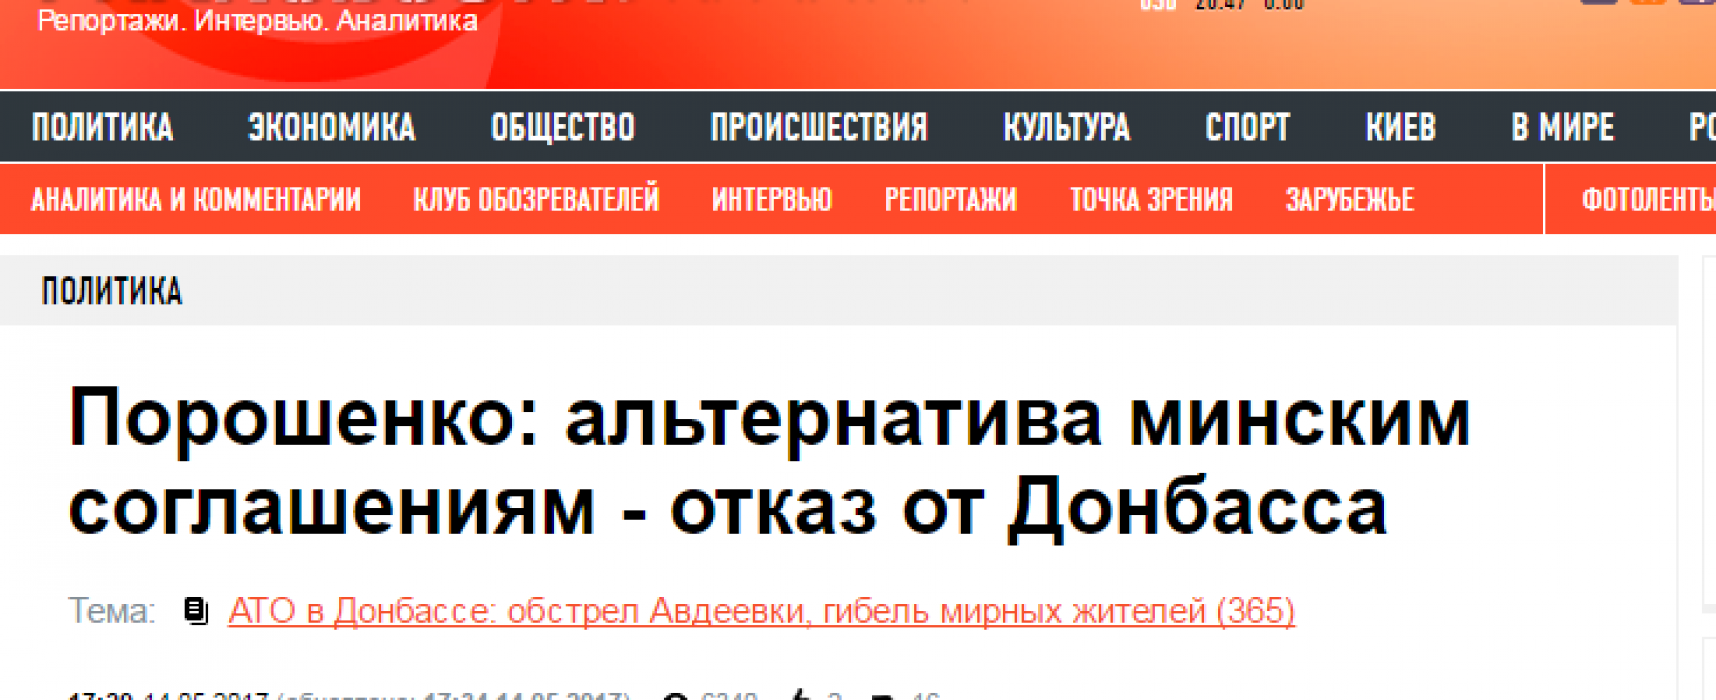 Fake: Poroshenko Advocates Cutting off Donbas and Building a Wall